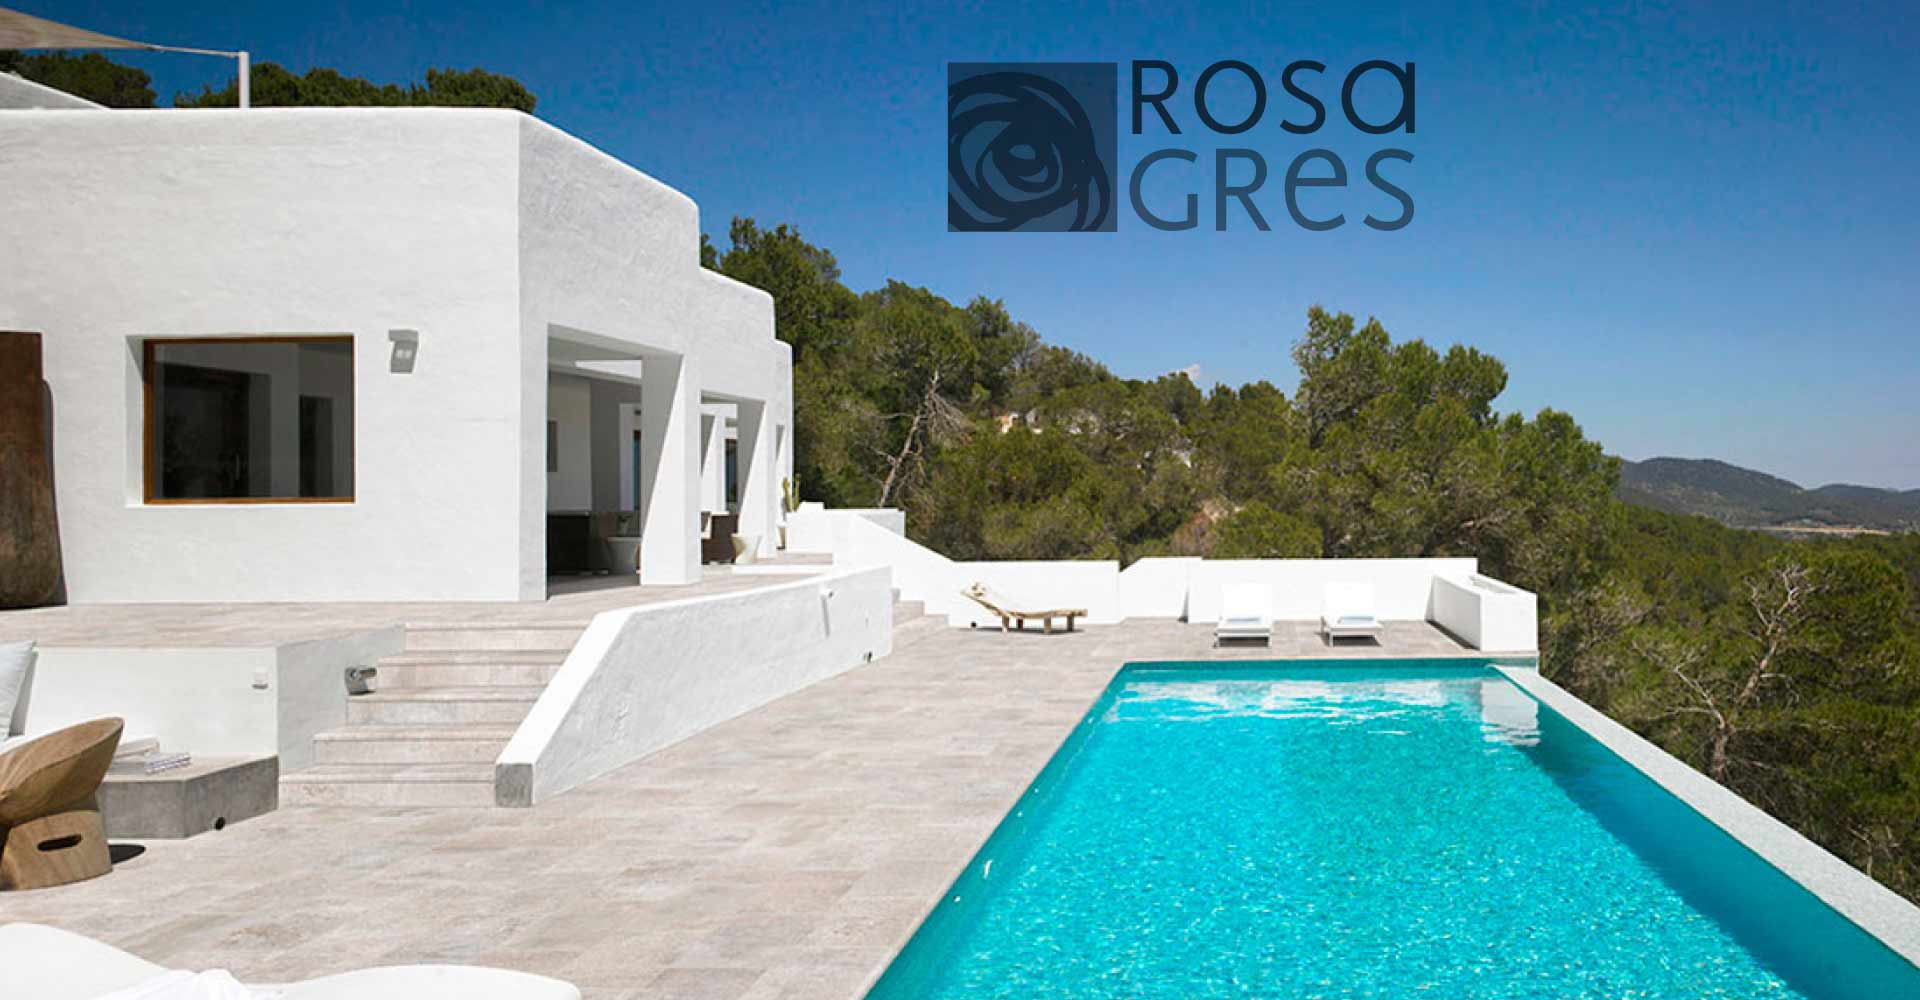 Rosa gres garc a reguera ii materiales de construcci n for Materiales para construccion de piscinas